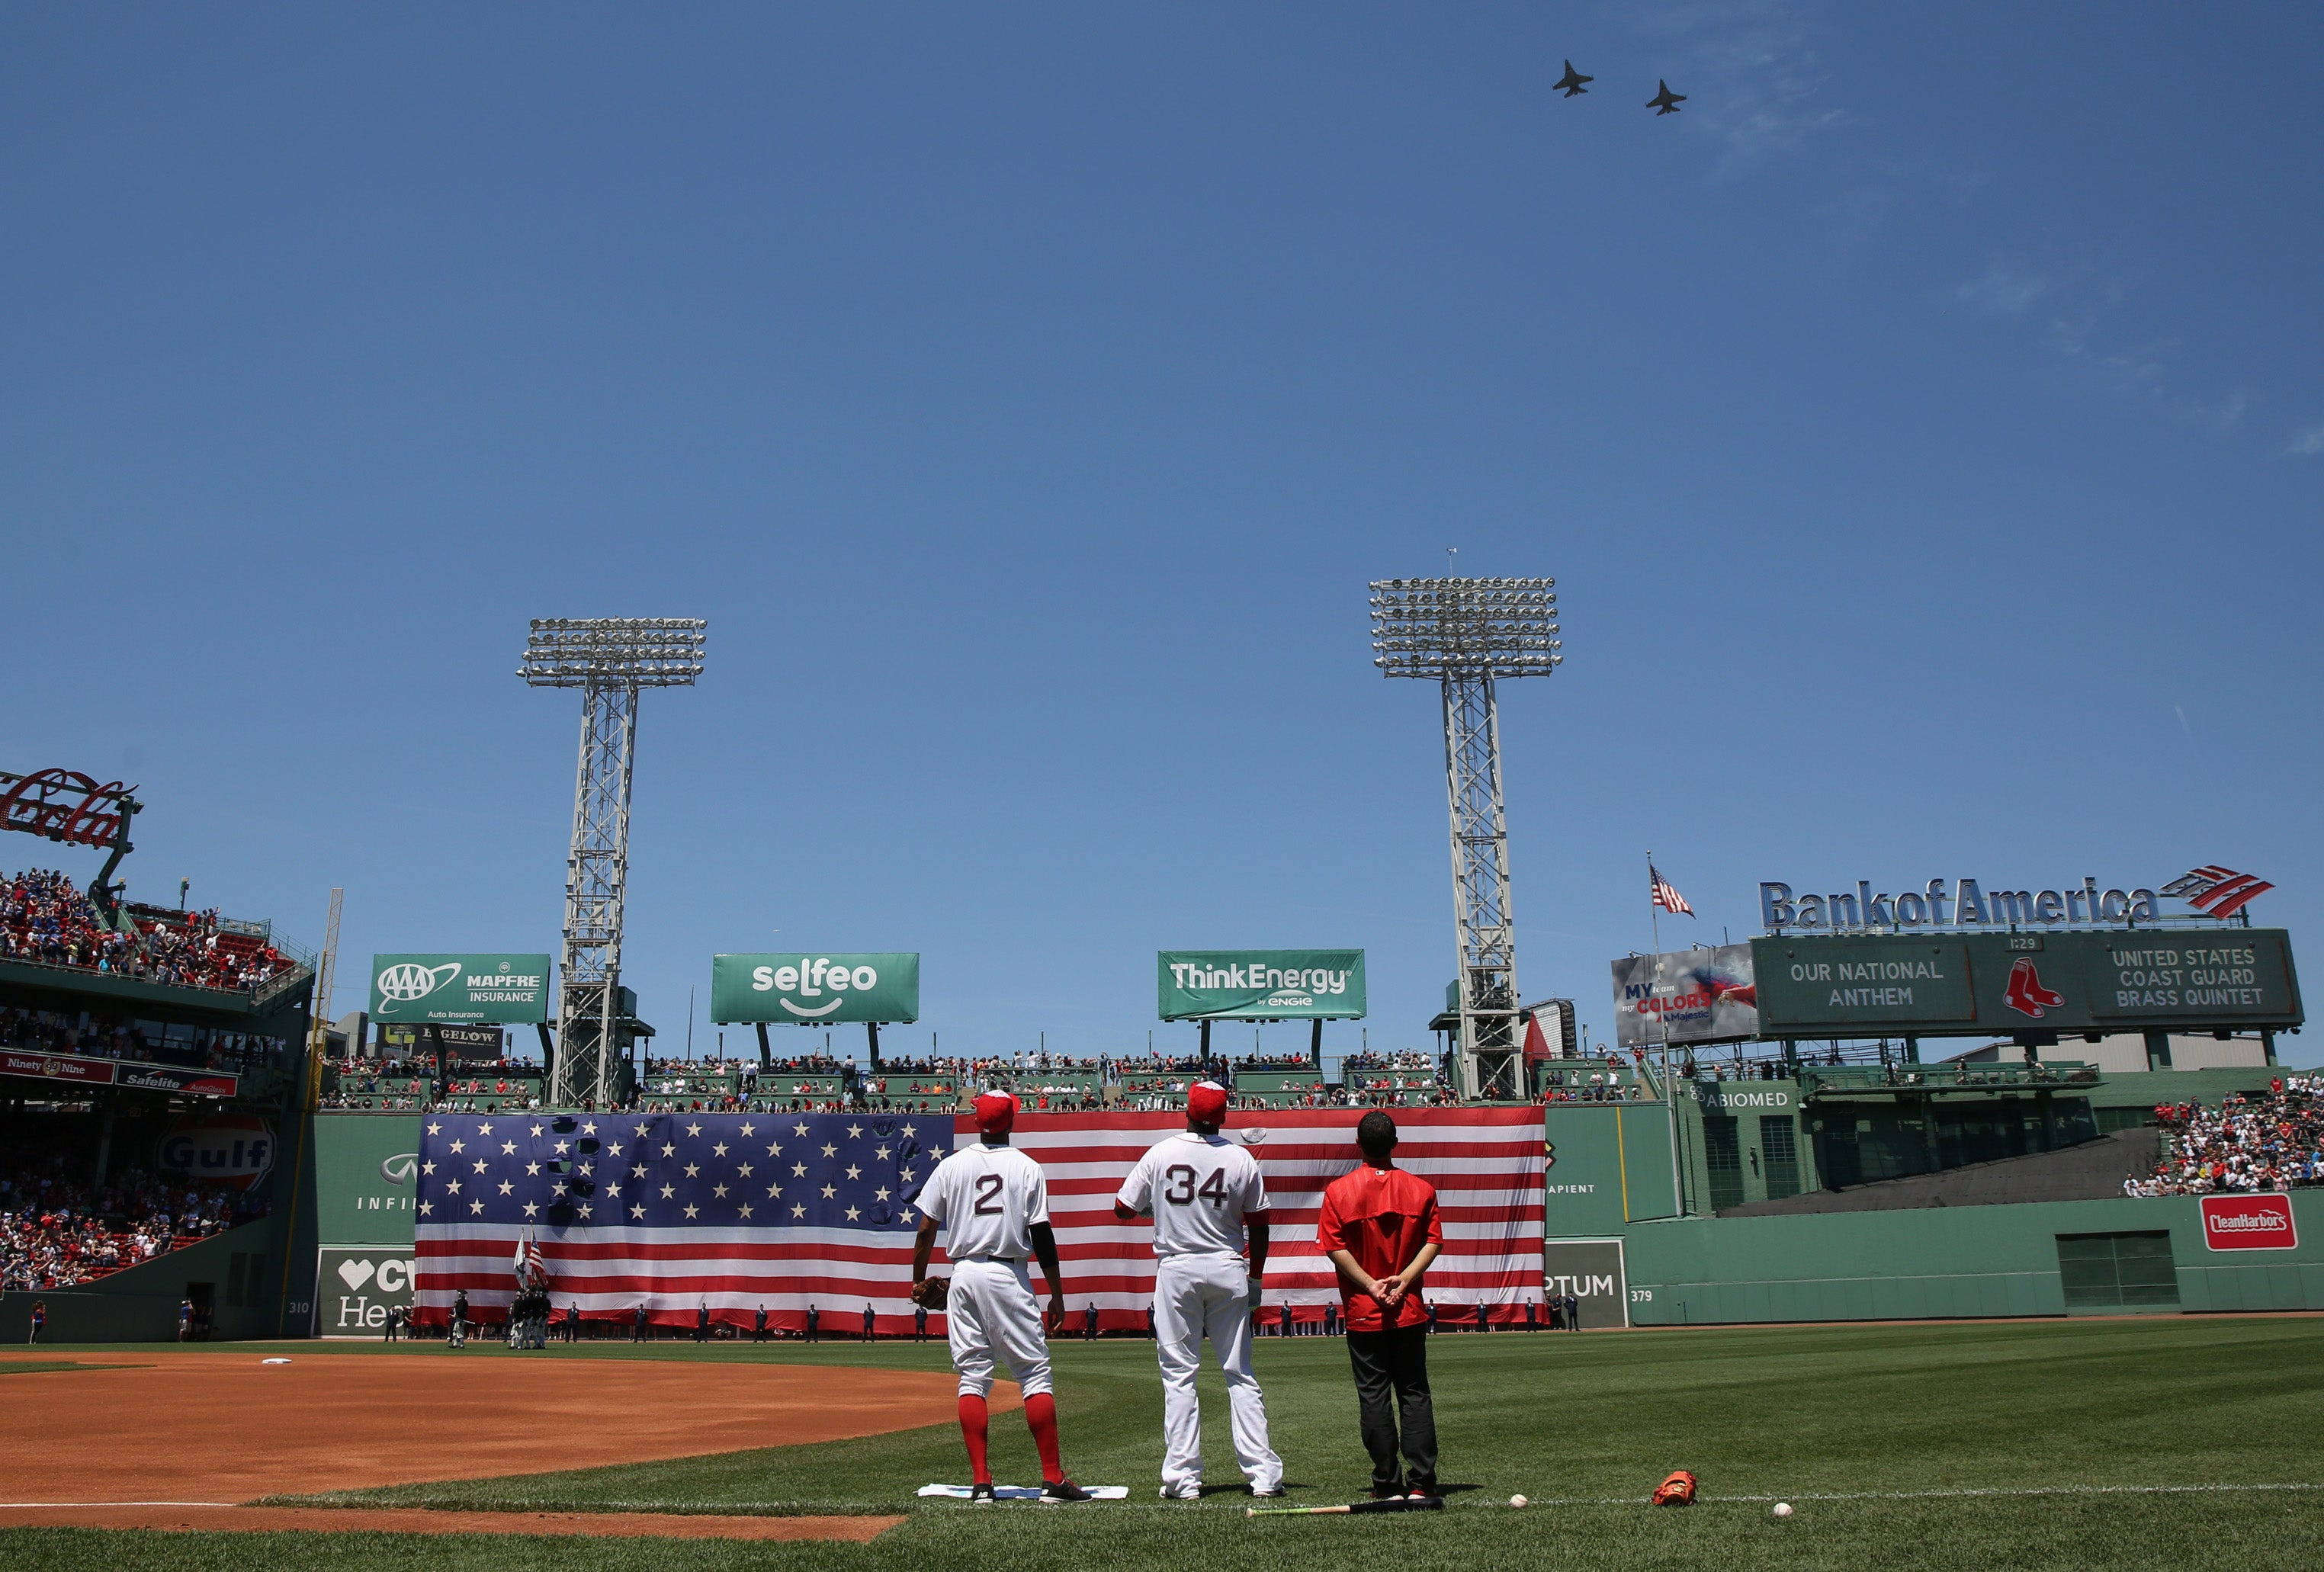 Two jets perform a flyover as a large American flag drapes over the Green Monster as part of 4th of July at Fenway Park.